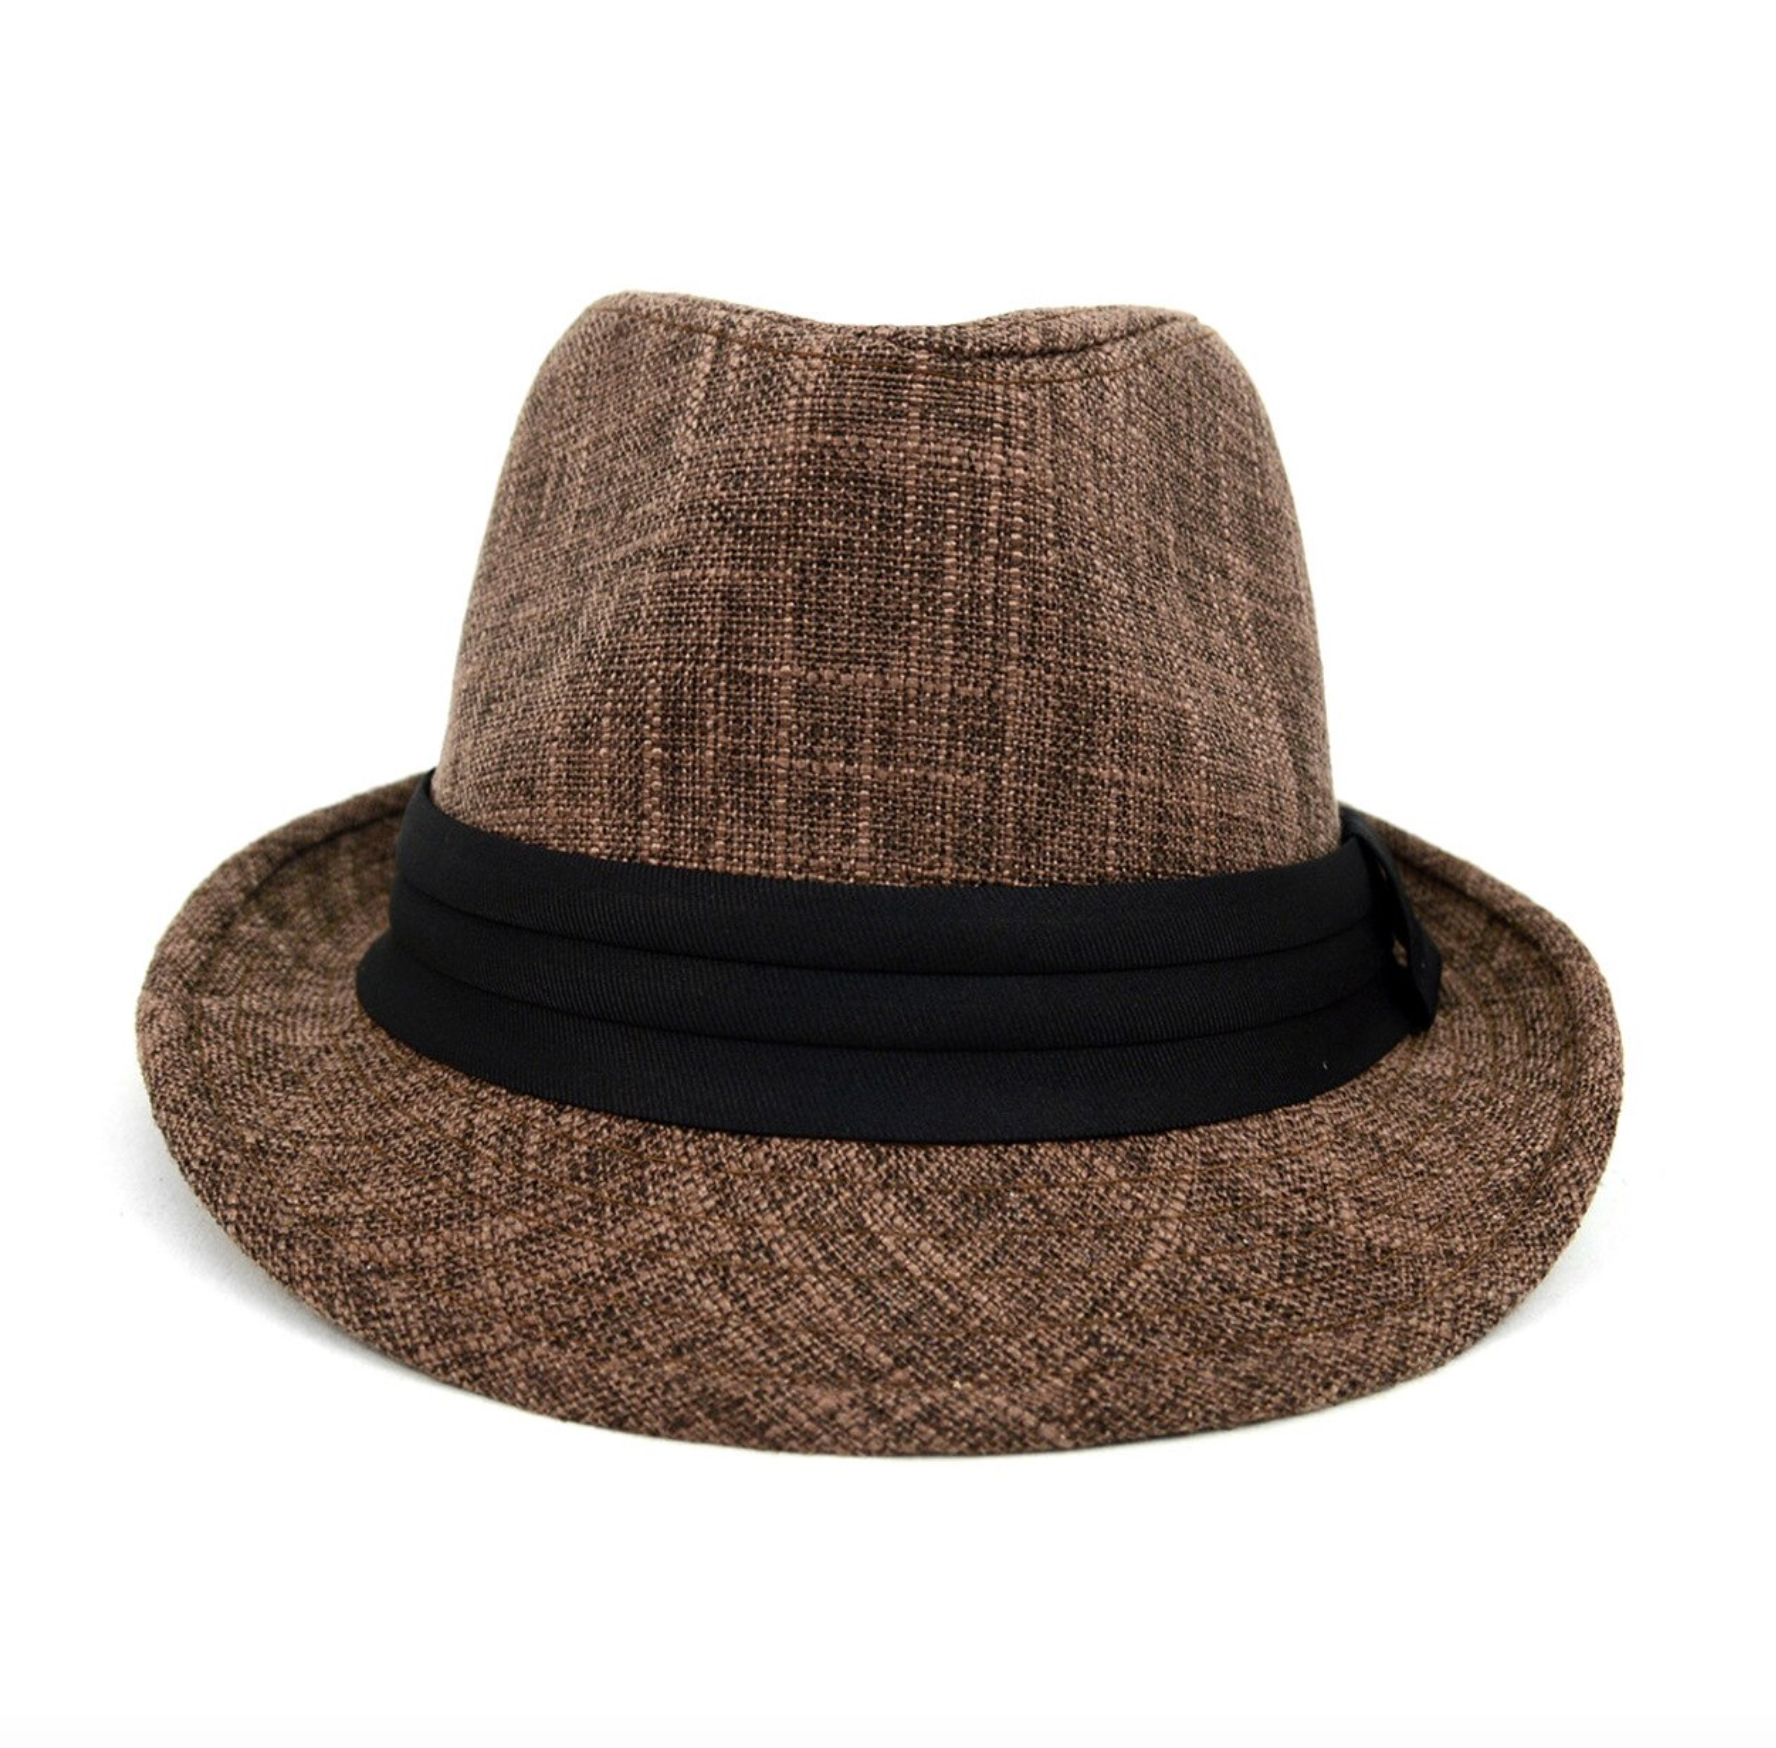 Brown Trilby Fedora Hat with Black Band Trim